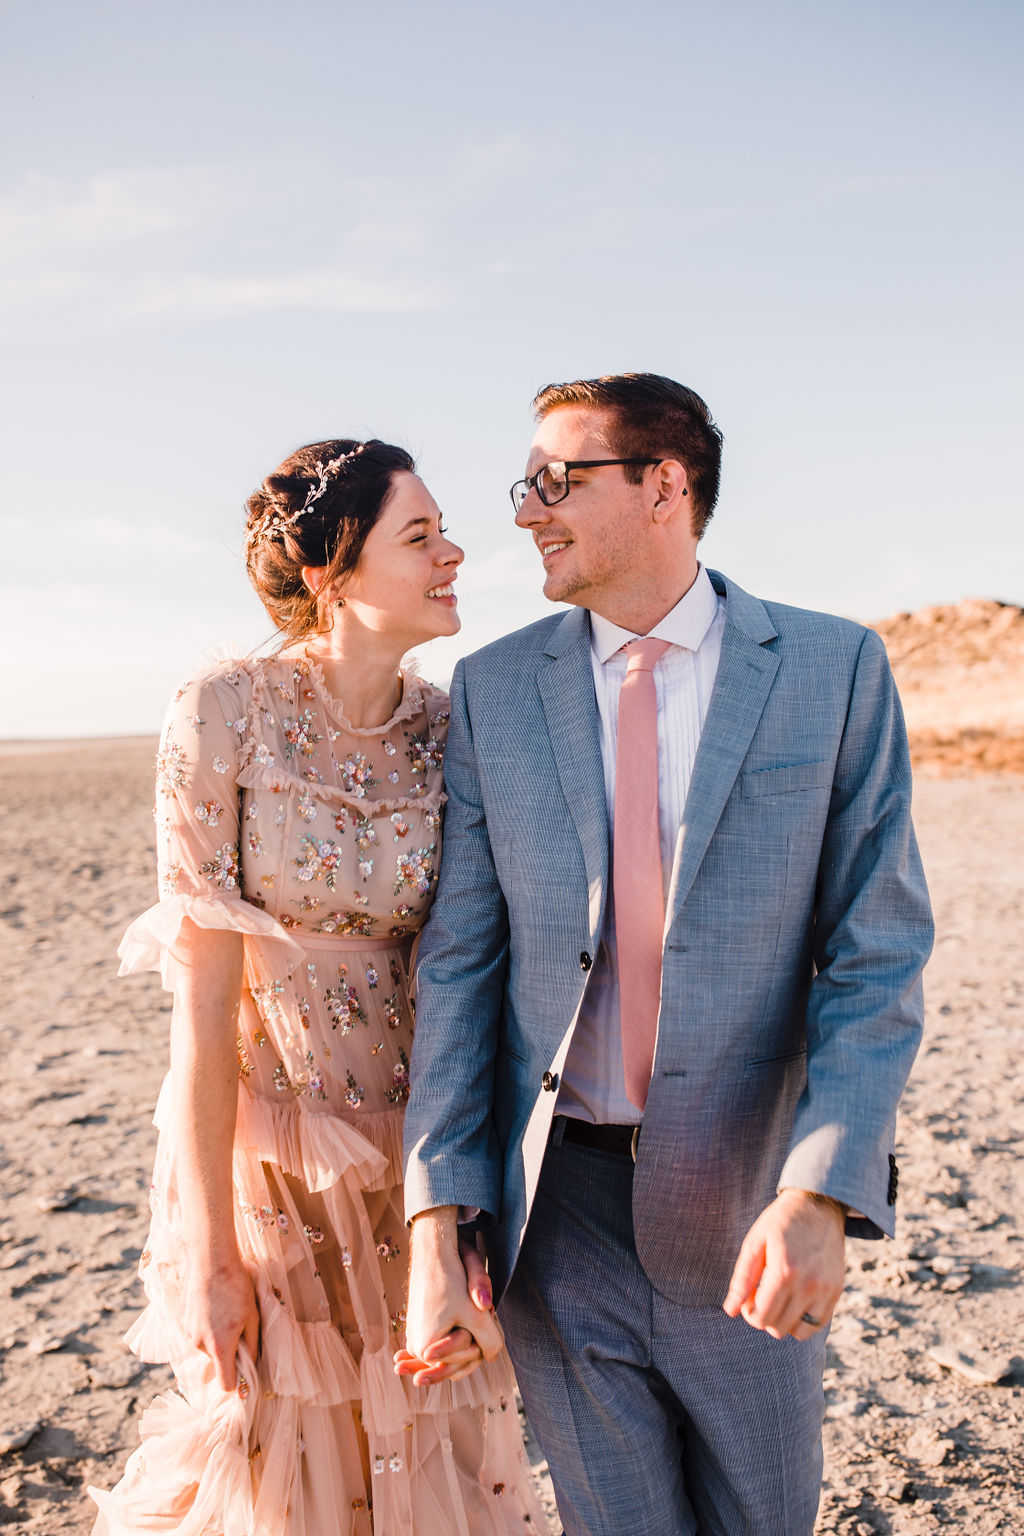 couple laughing walking sunset formals wedding photos bohemian wedding style braided hair grey suit holding hands bride and groom salt lake city wedding photographer calli richards